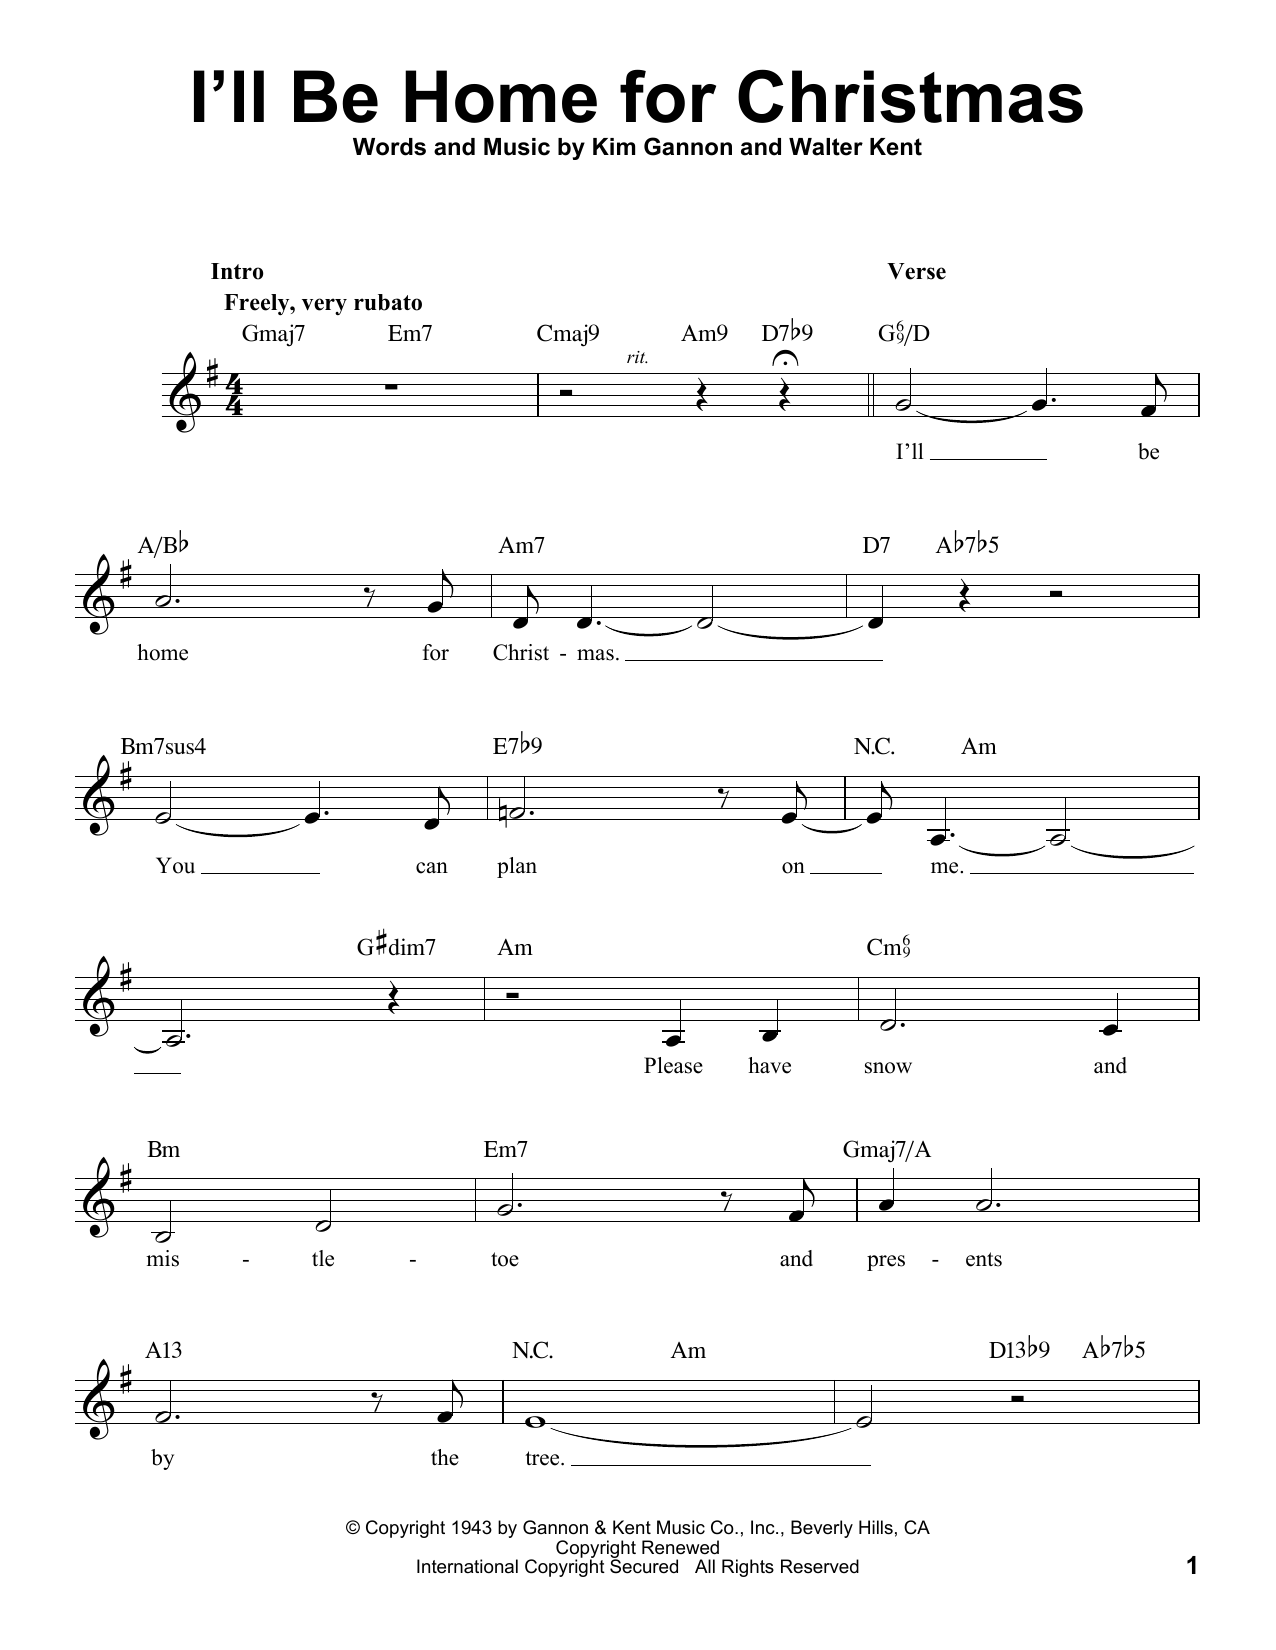 Ill Be Home For Christmas Chords.Michael Buble I Ll Be Home For Christmas Sheet Music Notes Chords Download Printable Voice Sku 186910